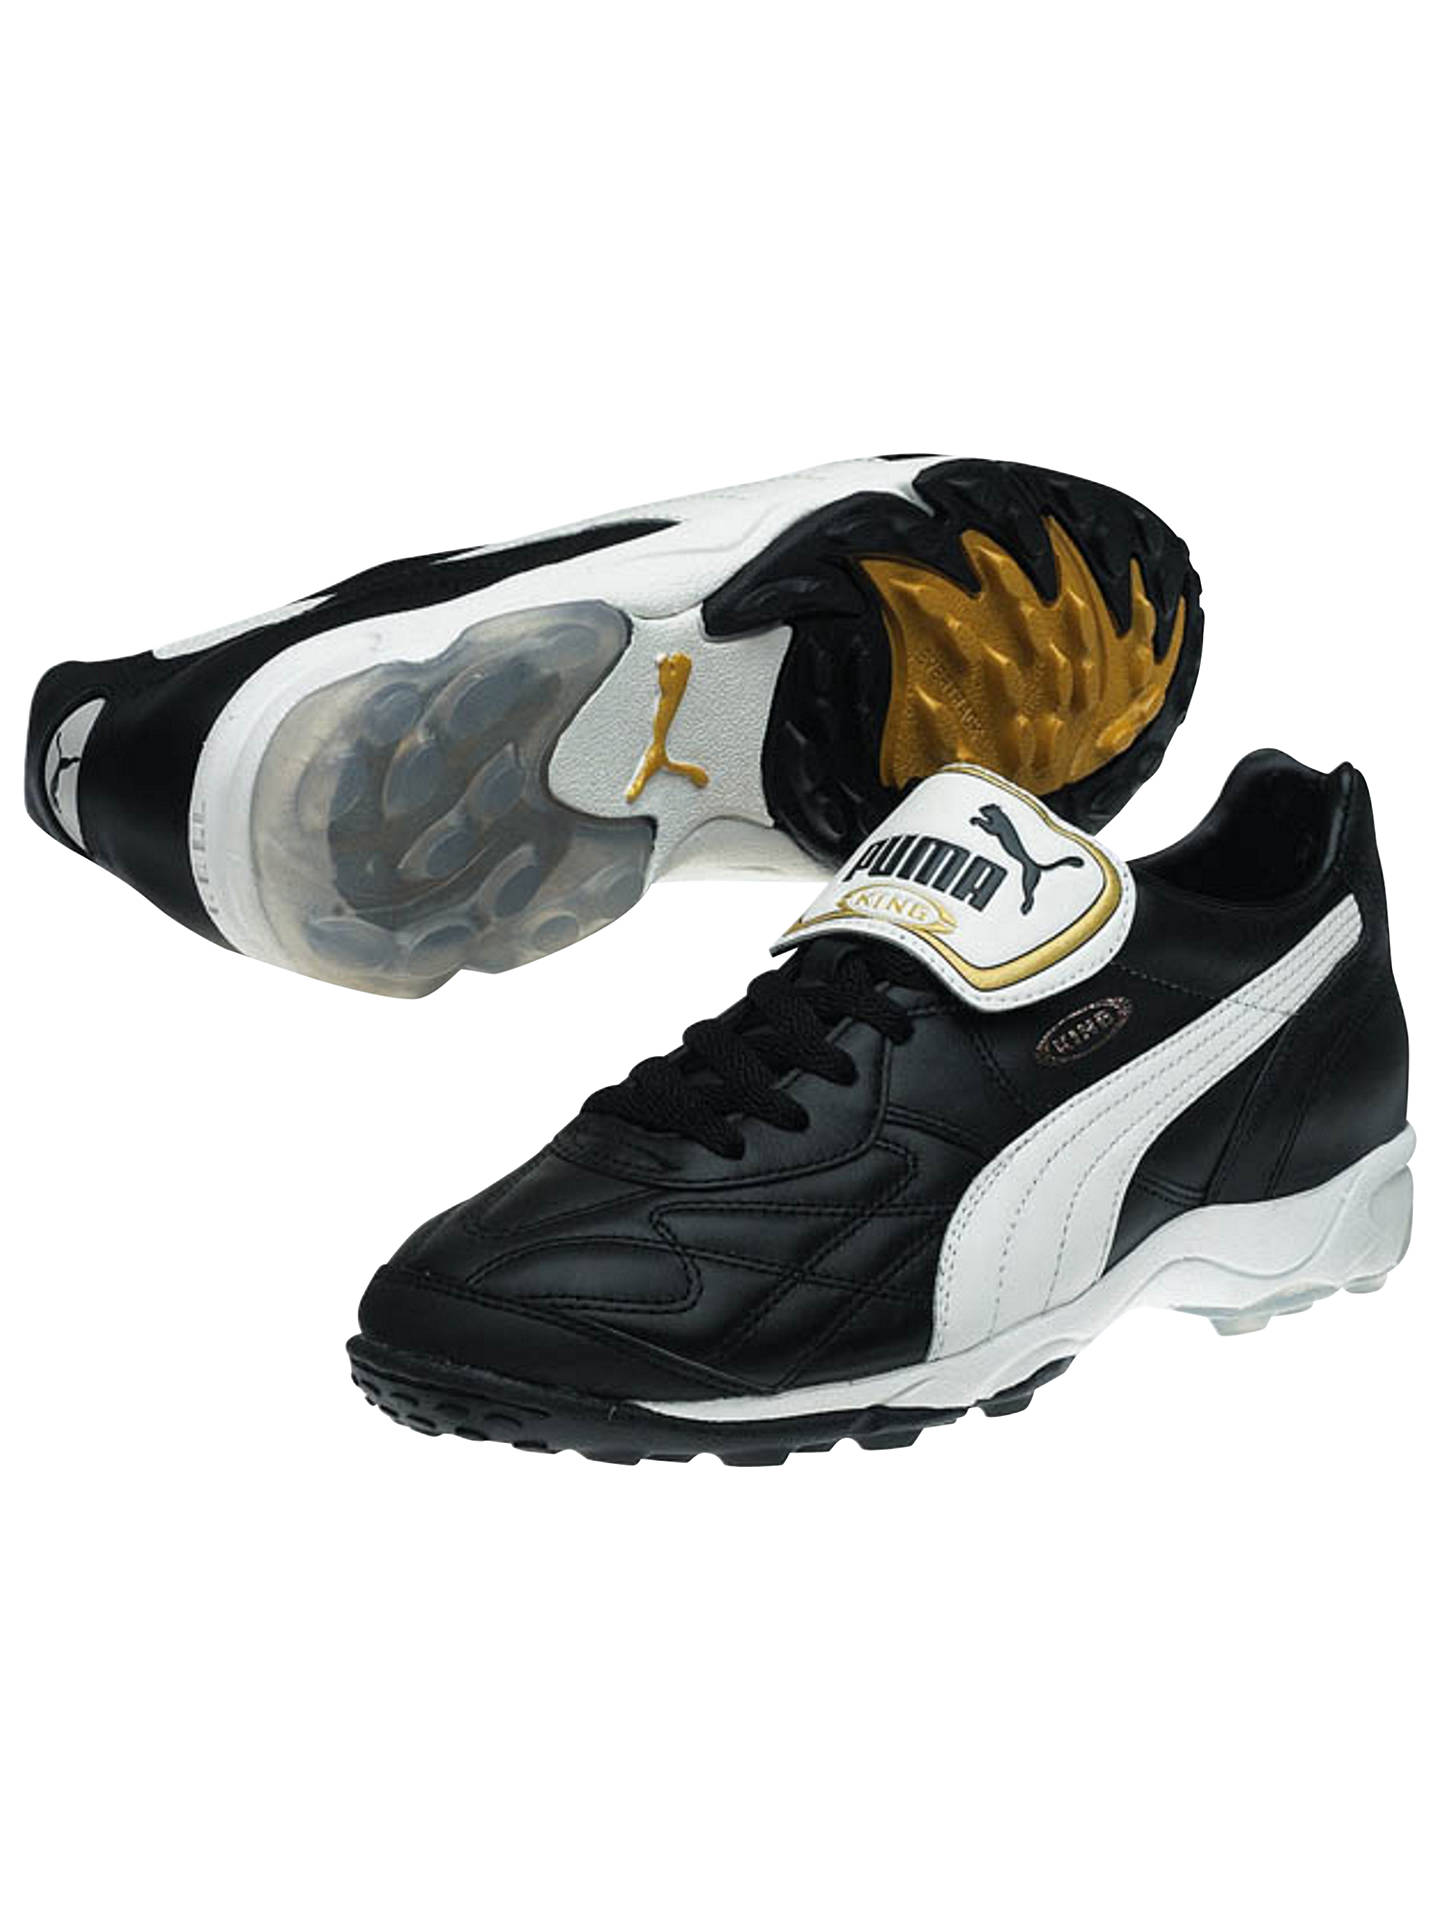 e10e4195bc8a57 BuyPuma King Allround TT Astro Football Boots